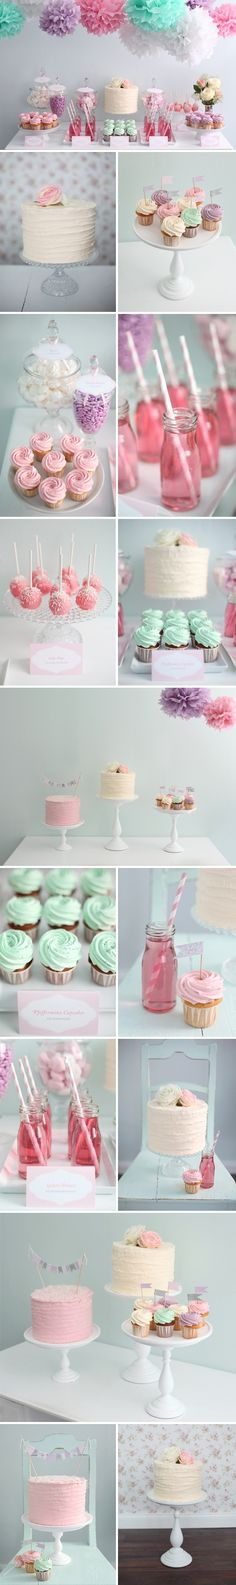 Best cupcakes ideas for baby shower girl birthday parties Ideas Baby Birthday, First Birthday Parties, First Birthdays, Birthday Table, Birthday Ideas, Birthday Cupcakes, Party Cupcakes, Girl Cupcakes, Baby Shower